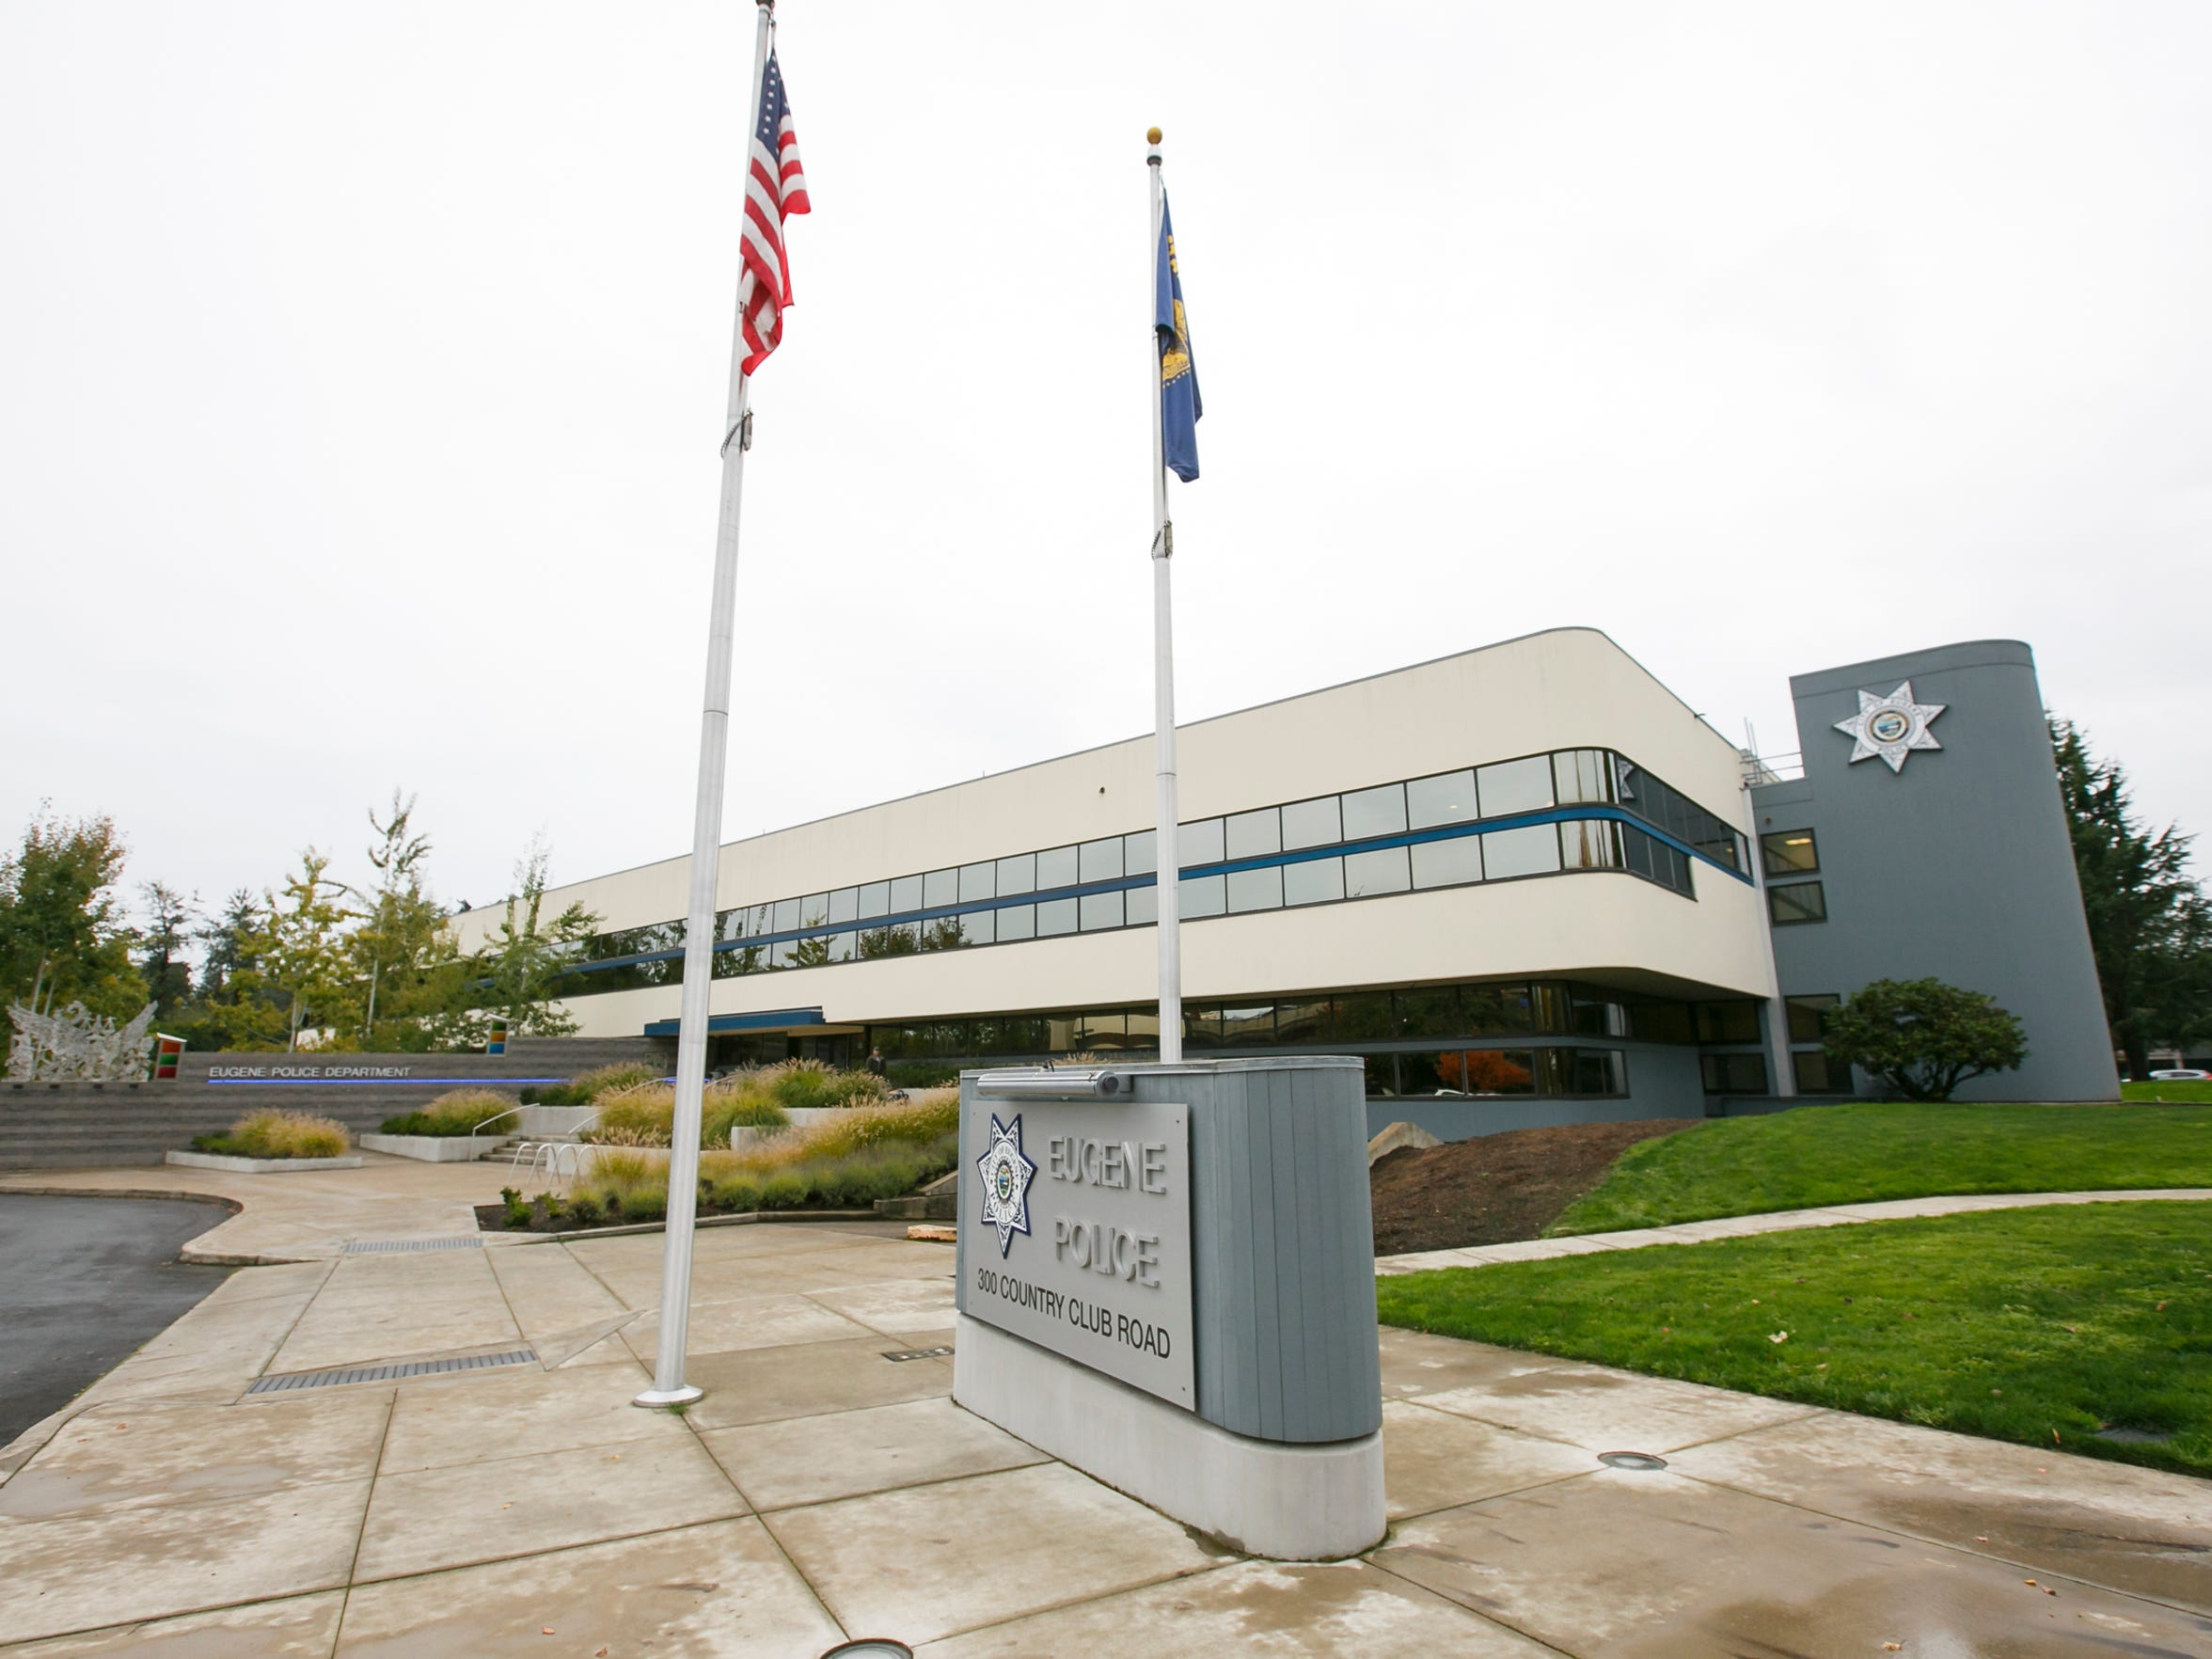 The Eugene Police Department's current building was purchased by the city six years ago for $10.2 million. Though an additional $7 million in renovations were applied, there are still changes to the building, originally constructed in the 1980s, that could be made to update the facility.